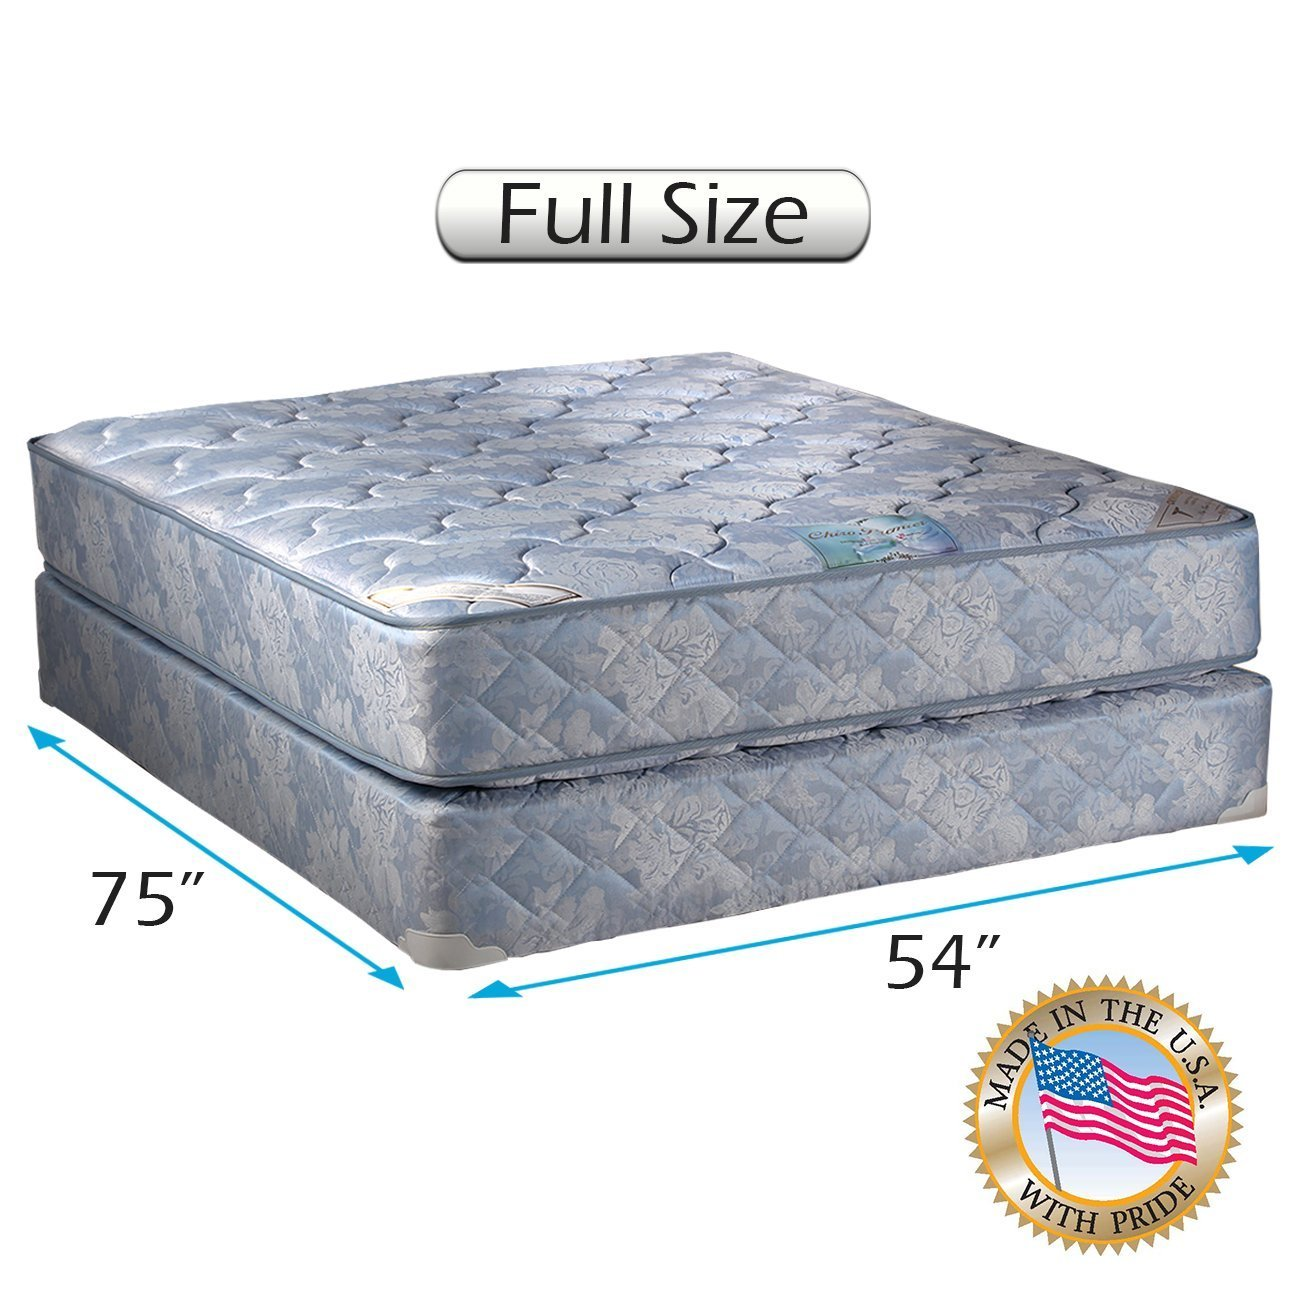 Dream Sleep Chiro Premier (Blue) Mattress Set with Mattress Protector Included - Quality Foam, Fully Assembled, Spine Support, Long Lasting and 2-Sided by Dream Solutions USA (Full 54''x75''x9'') by Dream Solutions USA